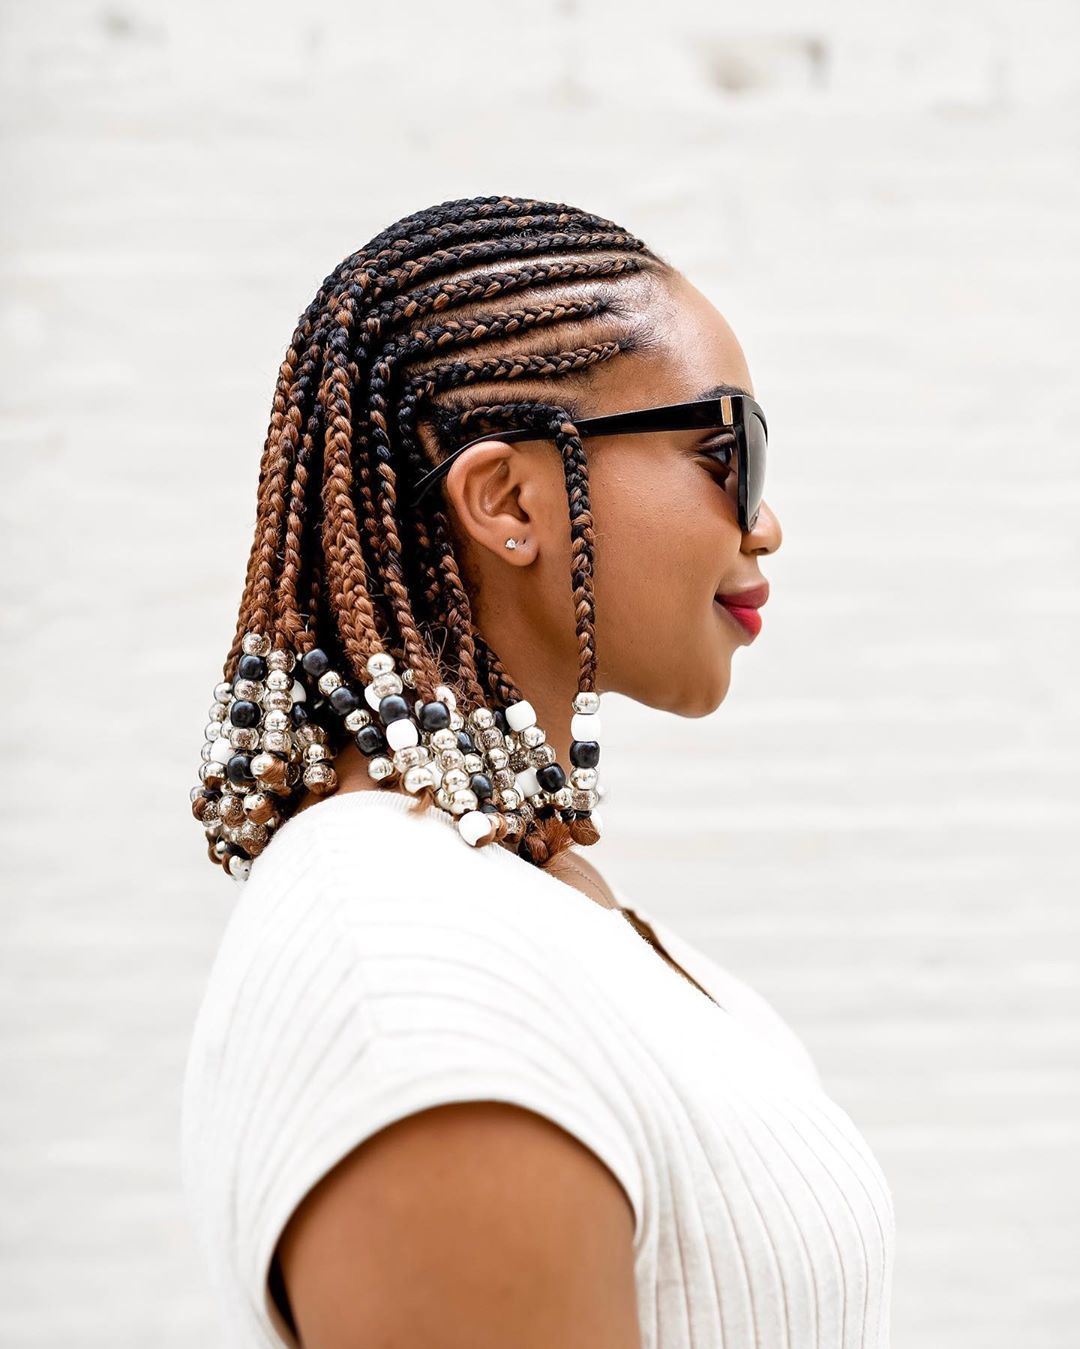 Woman with shoulder length cornrow hairstyle with beads